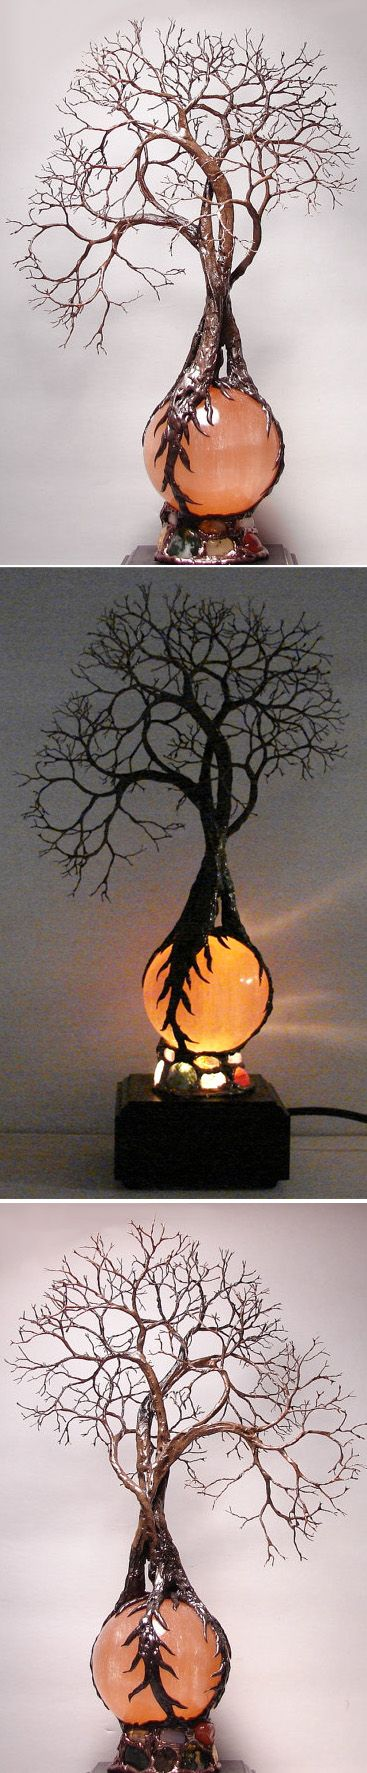 Hand-made :: Wire Tree Of Life Ancient Grove Spirits sculpture on natural Orange Selenite Full Moon Sphere Gemstones Lamp by CrowsFeathers